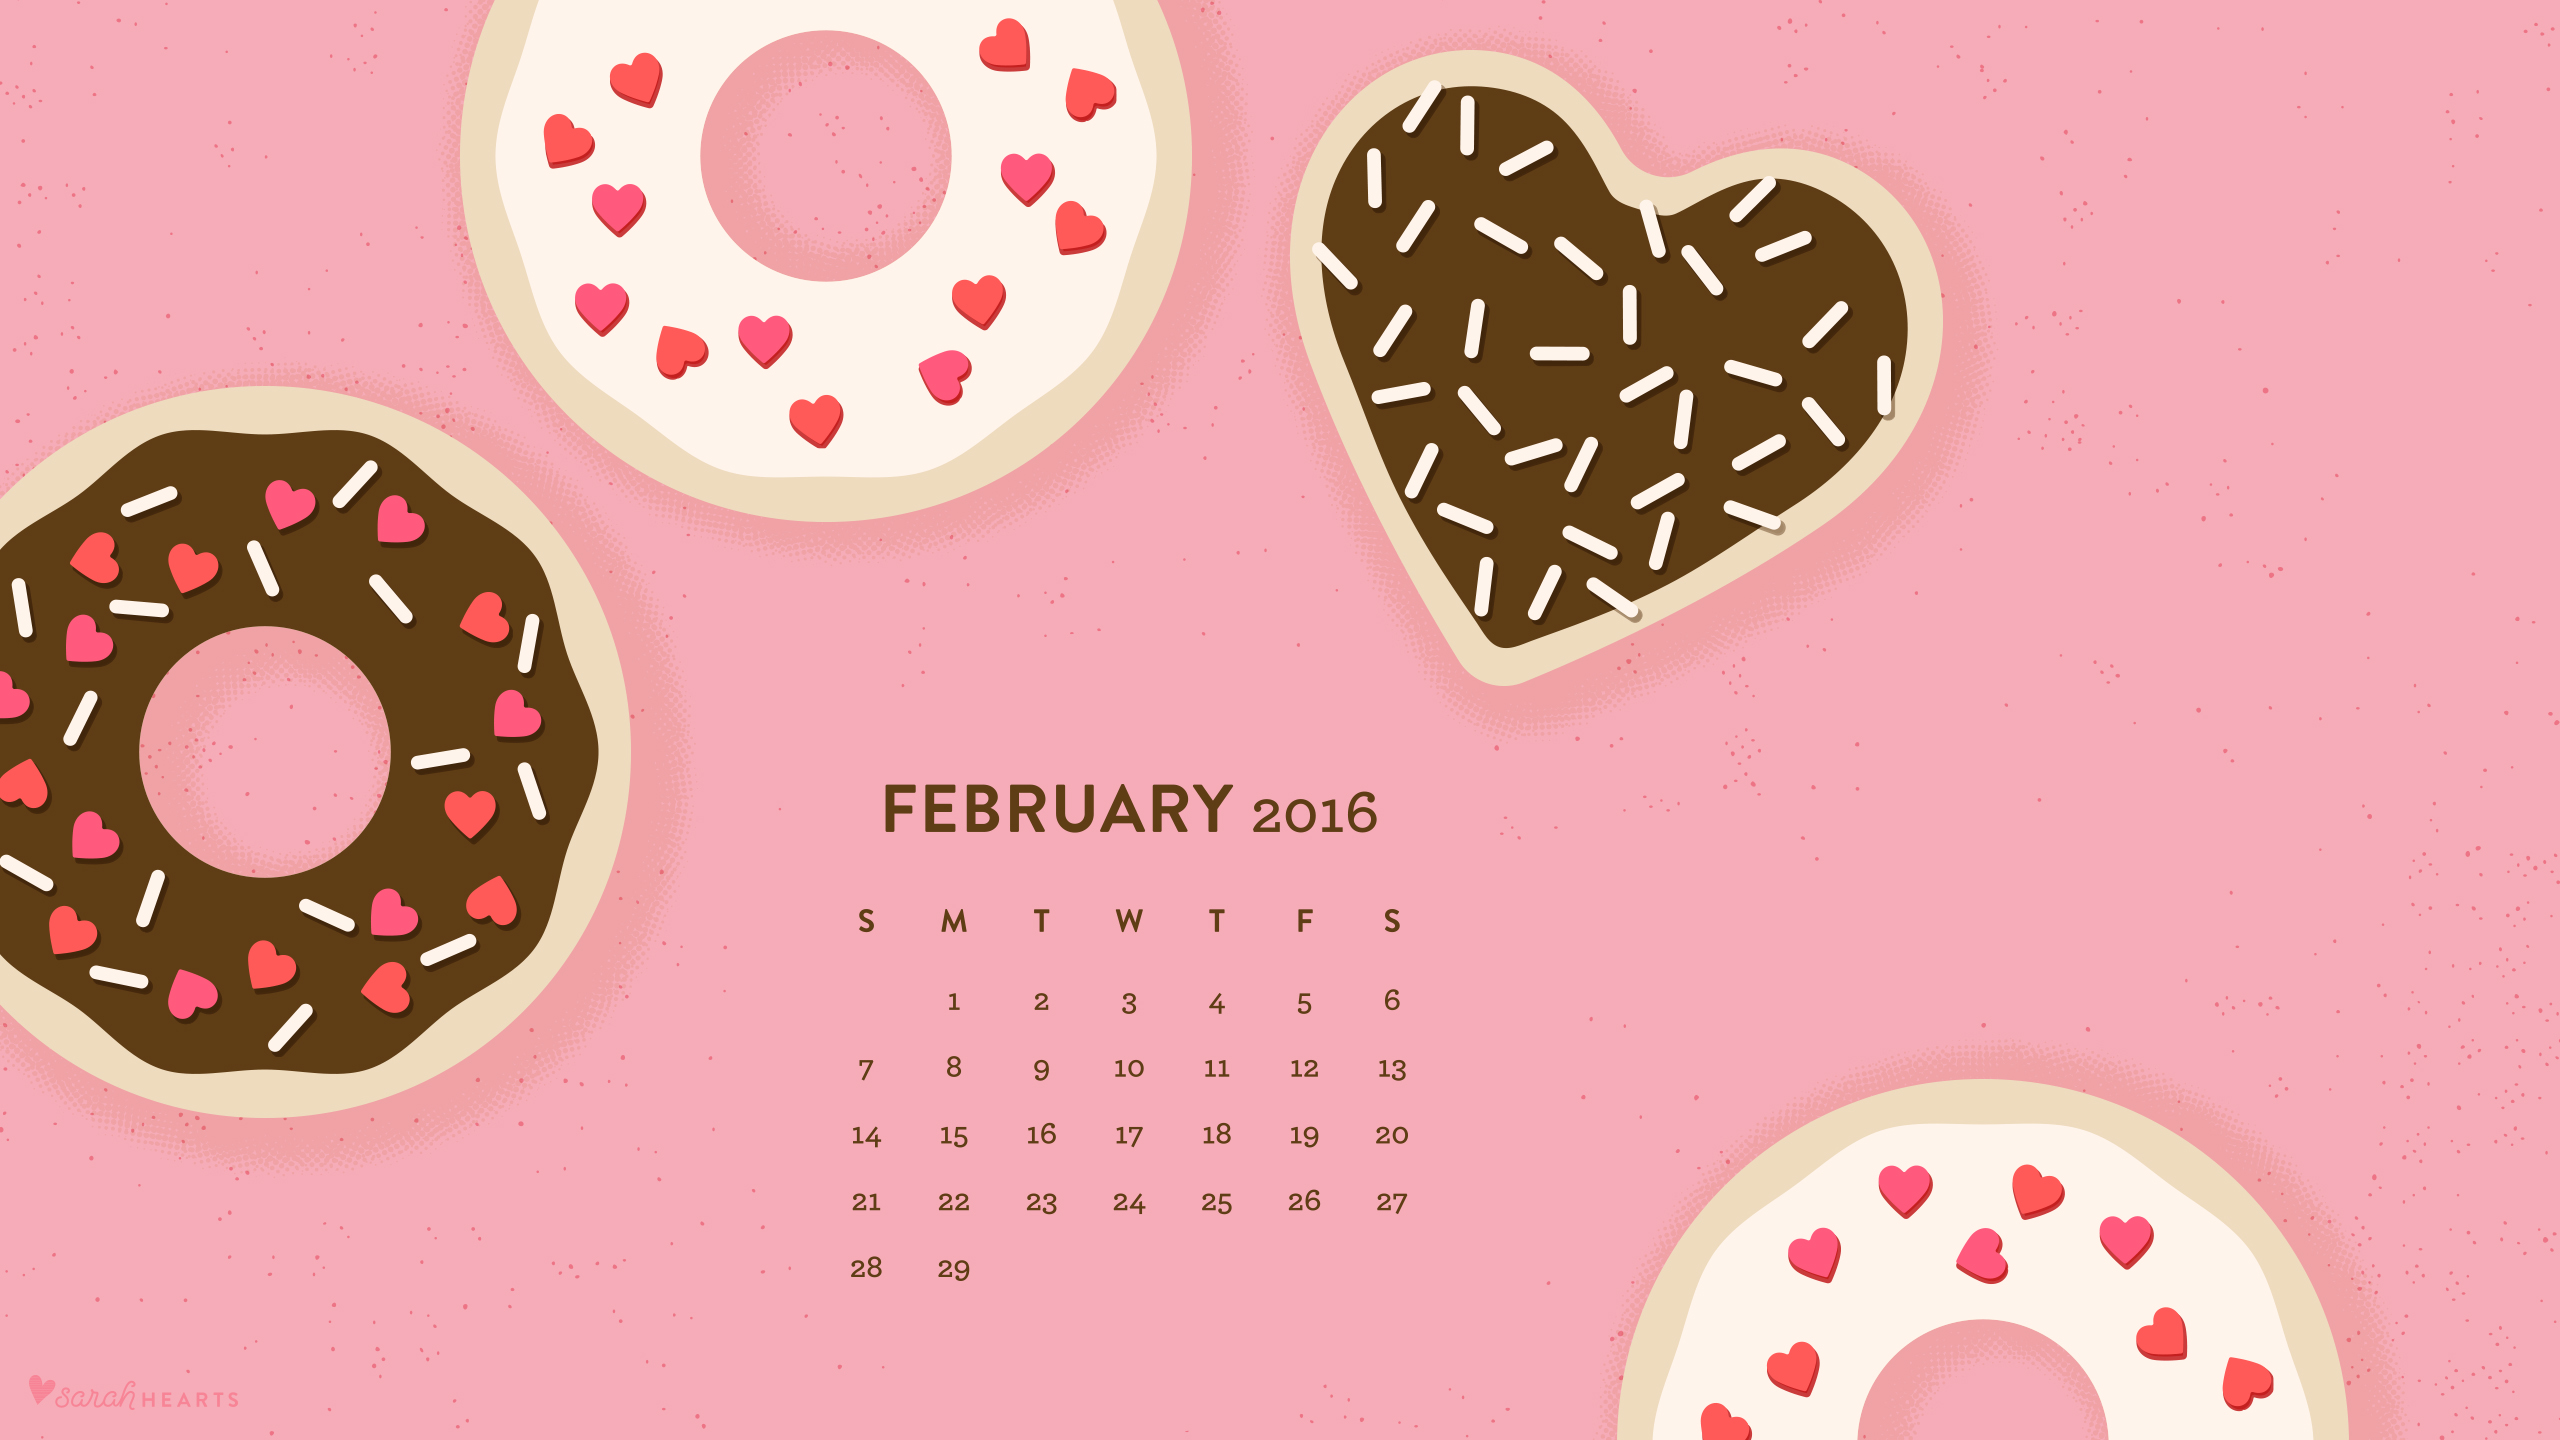 February 2016 calendar wallpaper sarah hearts for Terengganu home wallpaper 2016